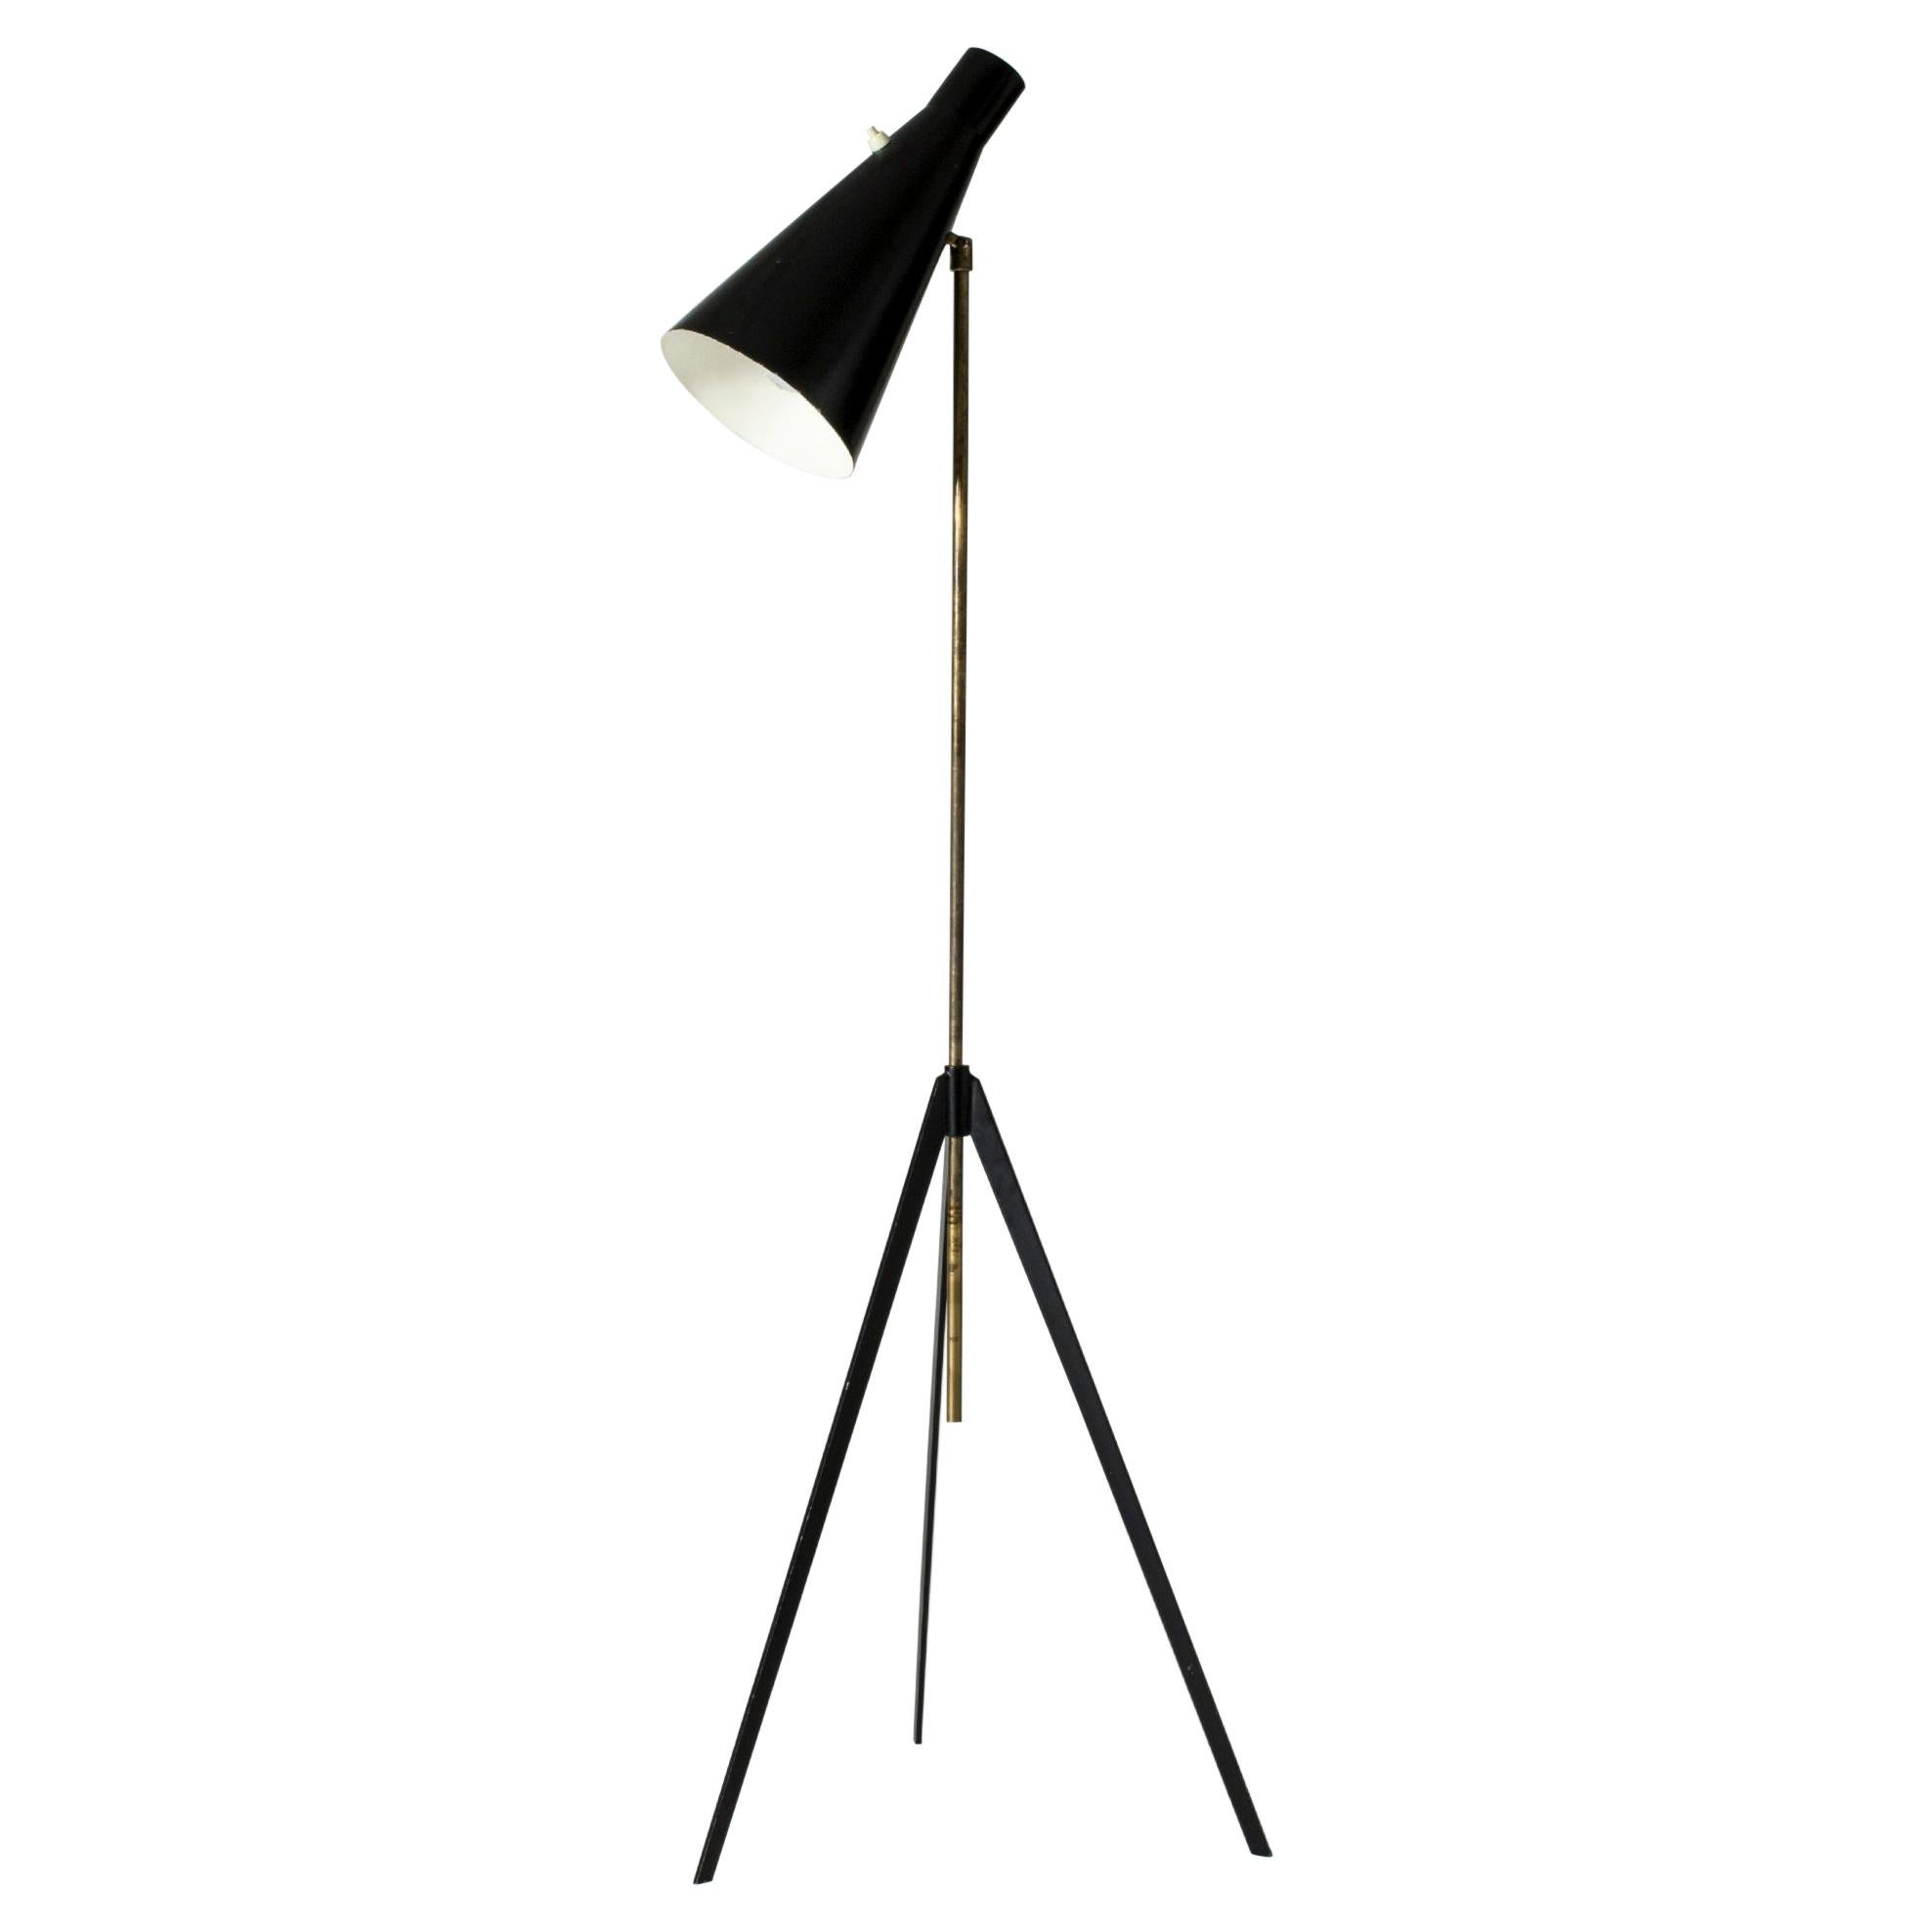 Midcentury Lacquered Metal & Brass Floor Lamp by Alf Svensson for Bergboms